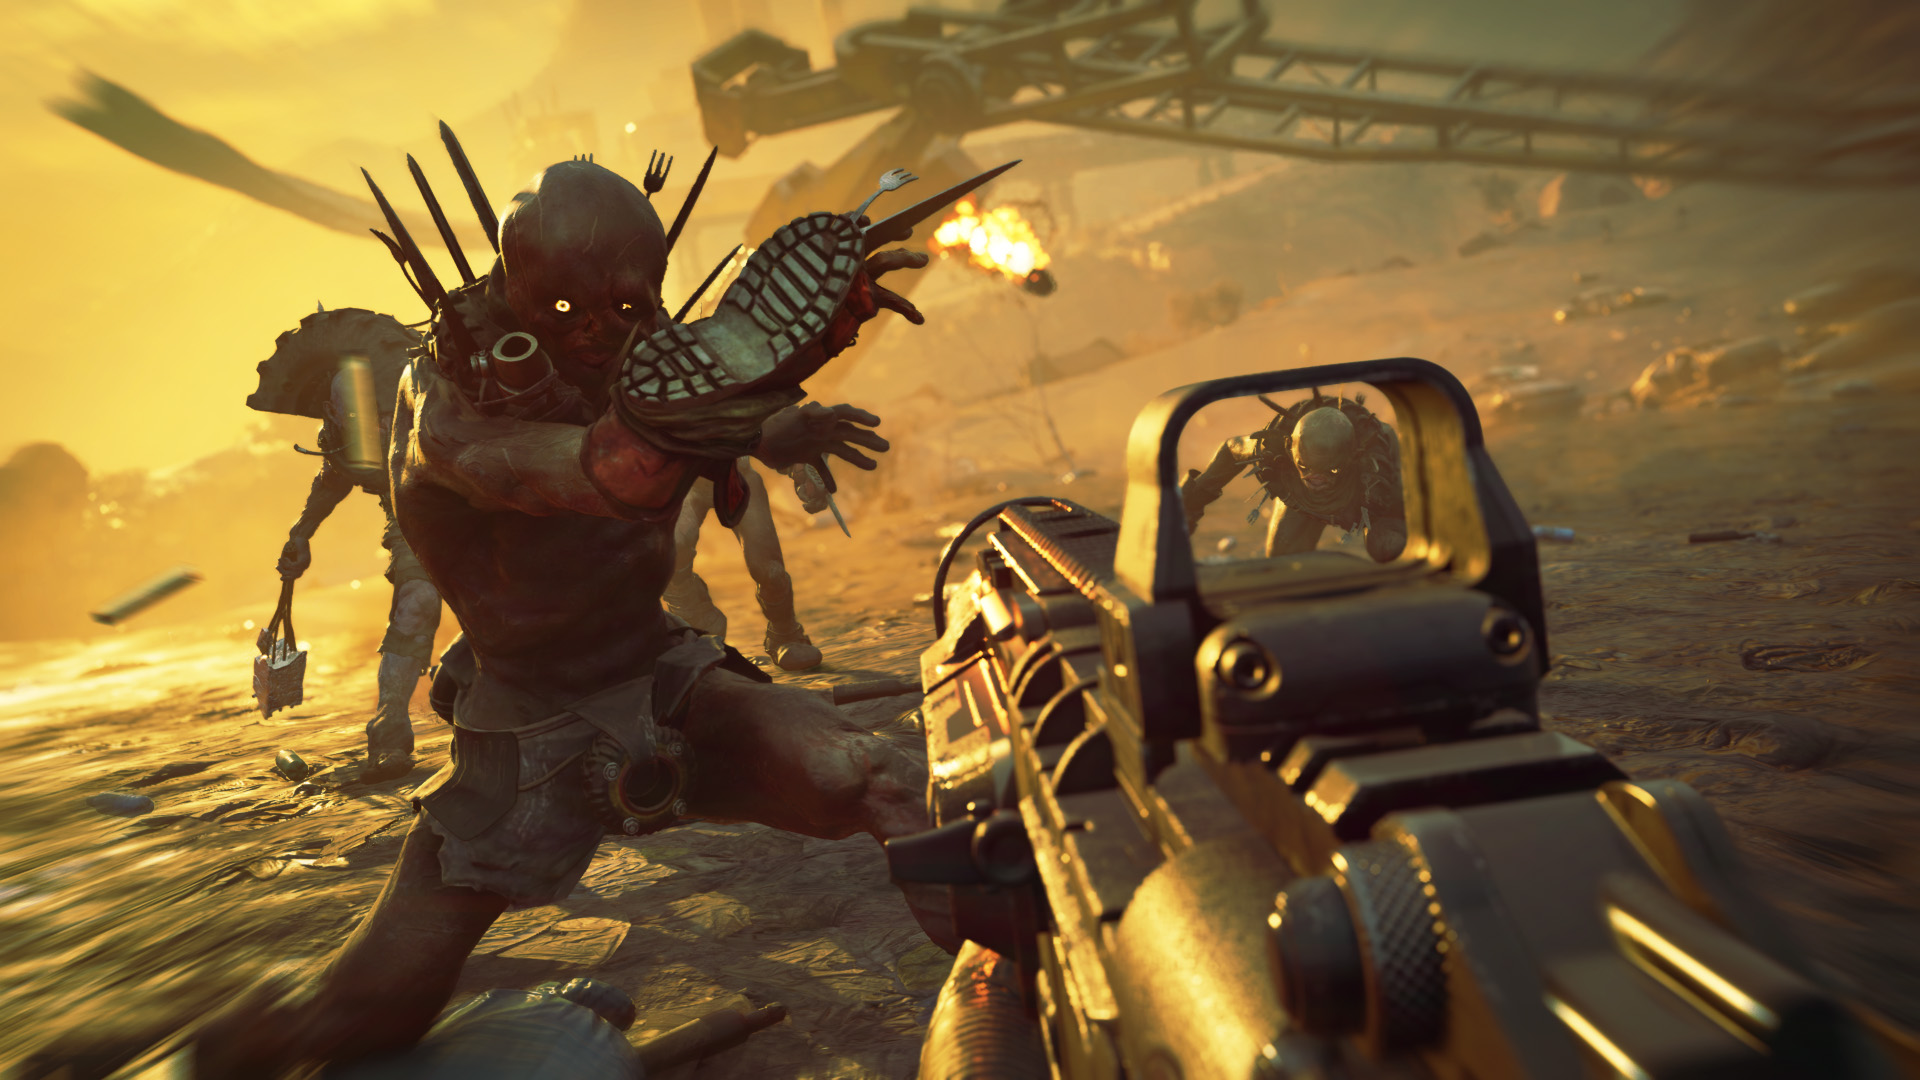 RAGE 2 Gameplay Screenshot 7. Bild: Bethesda